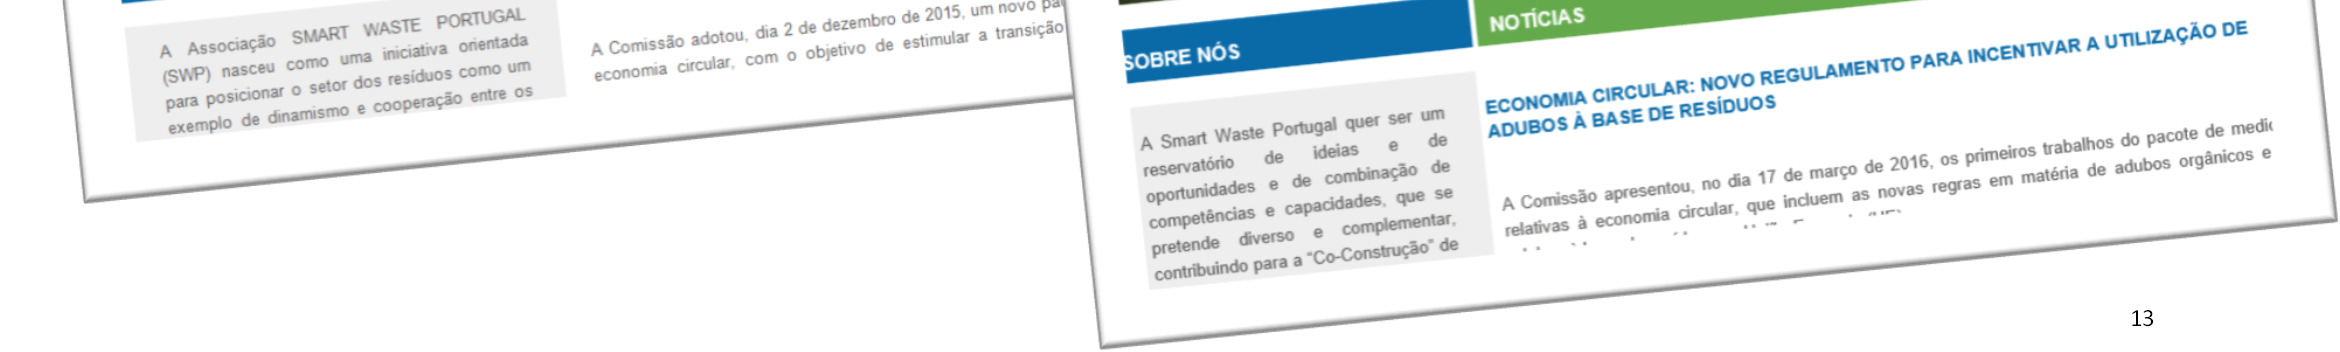 SMART WASTE PORTUGAL PRINCIPAIS